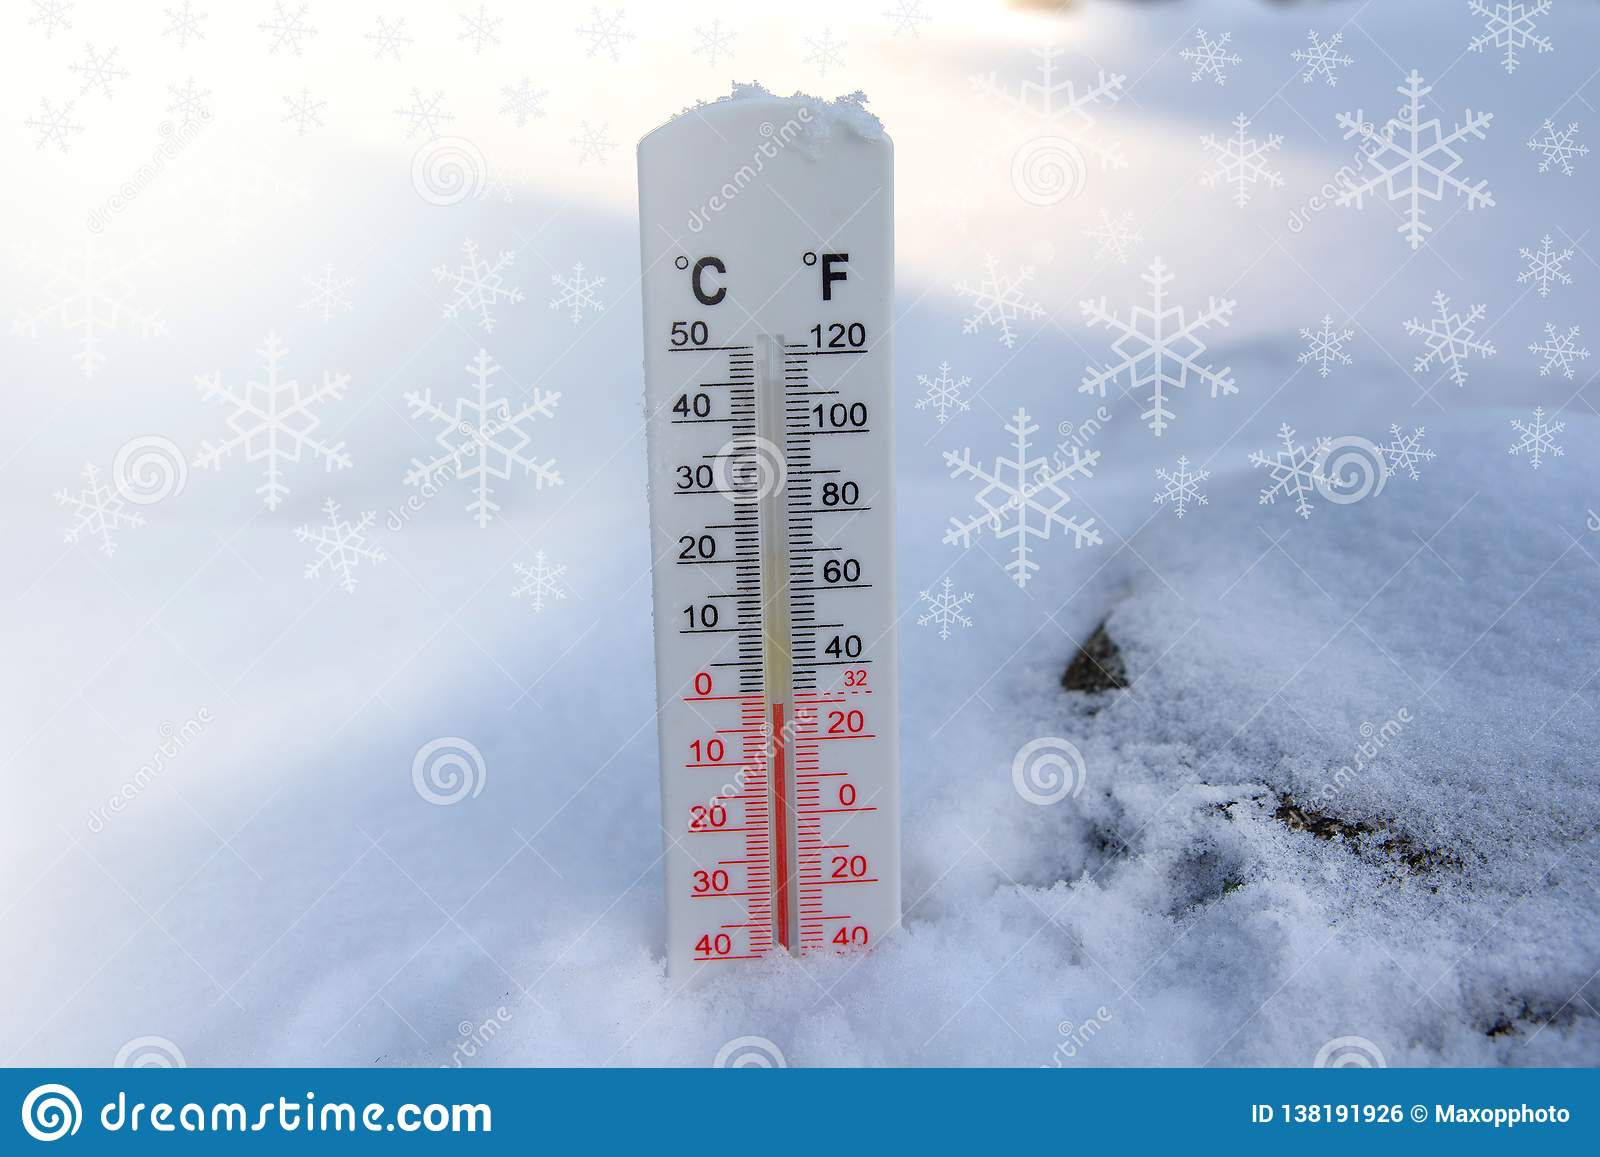 Thermometer on snow shows freezing temperature in celsius or farenheit